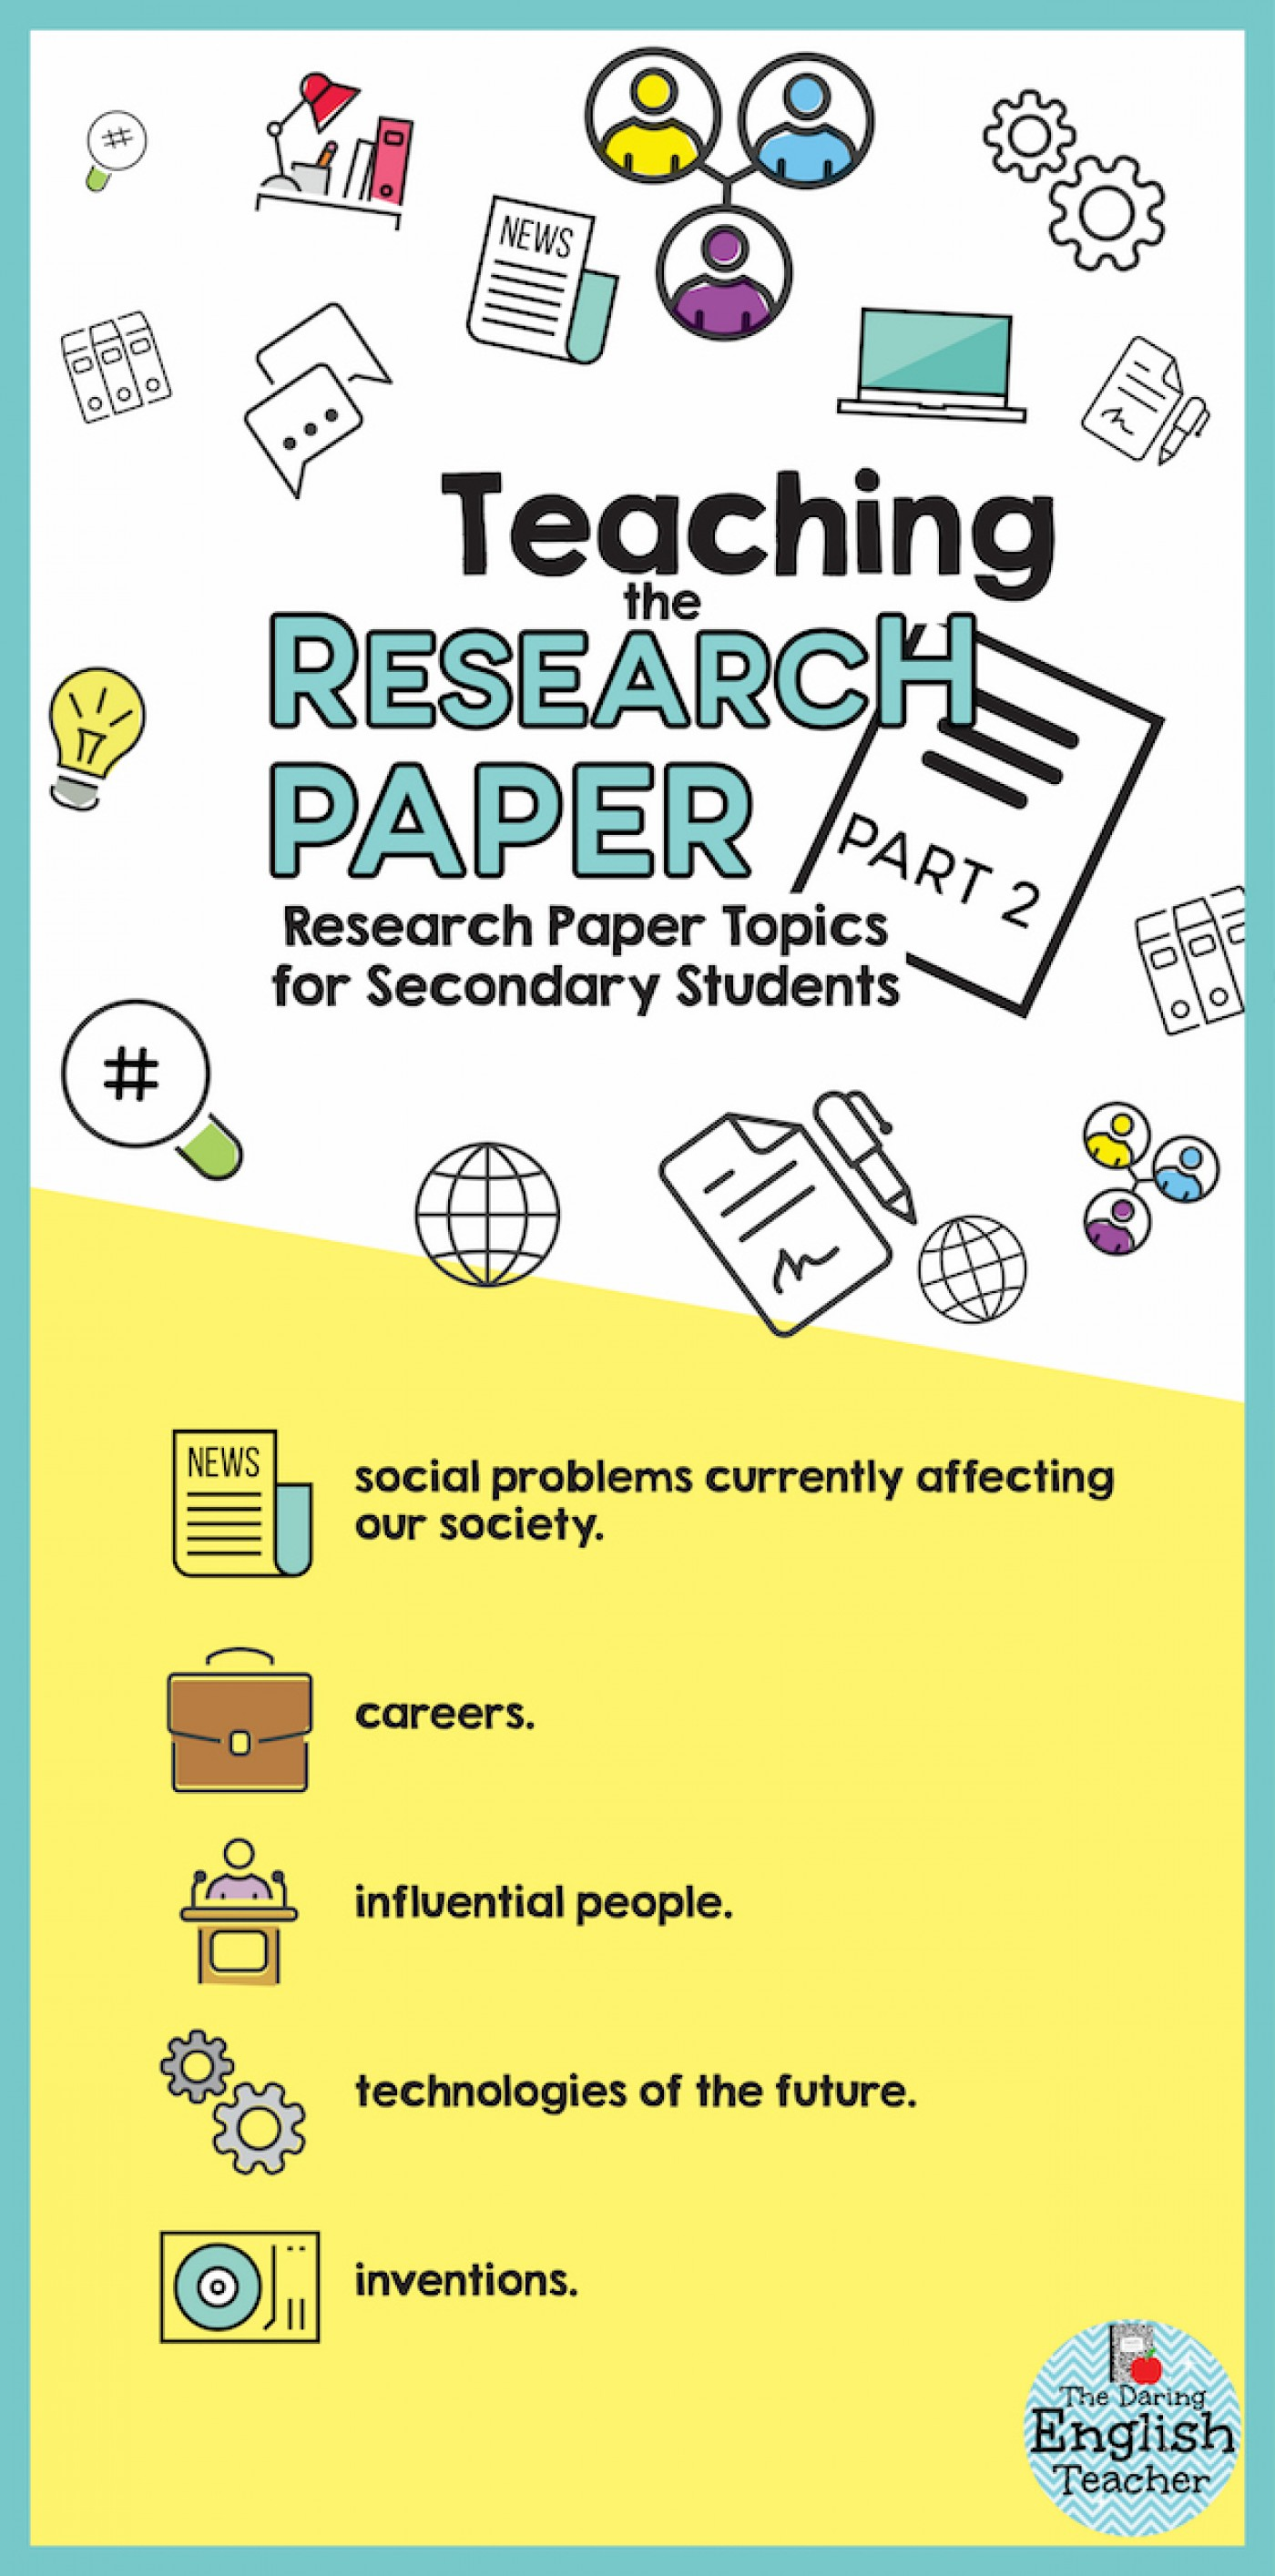 012 Research Paper Infographic2bp22b2 Topics High Incredible School Argumentative Biology Physics 1400